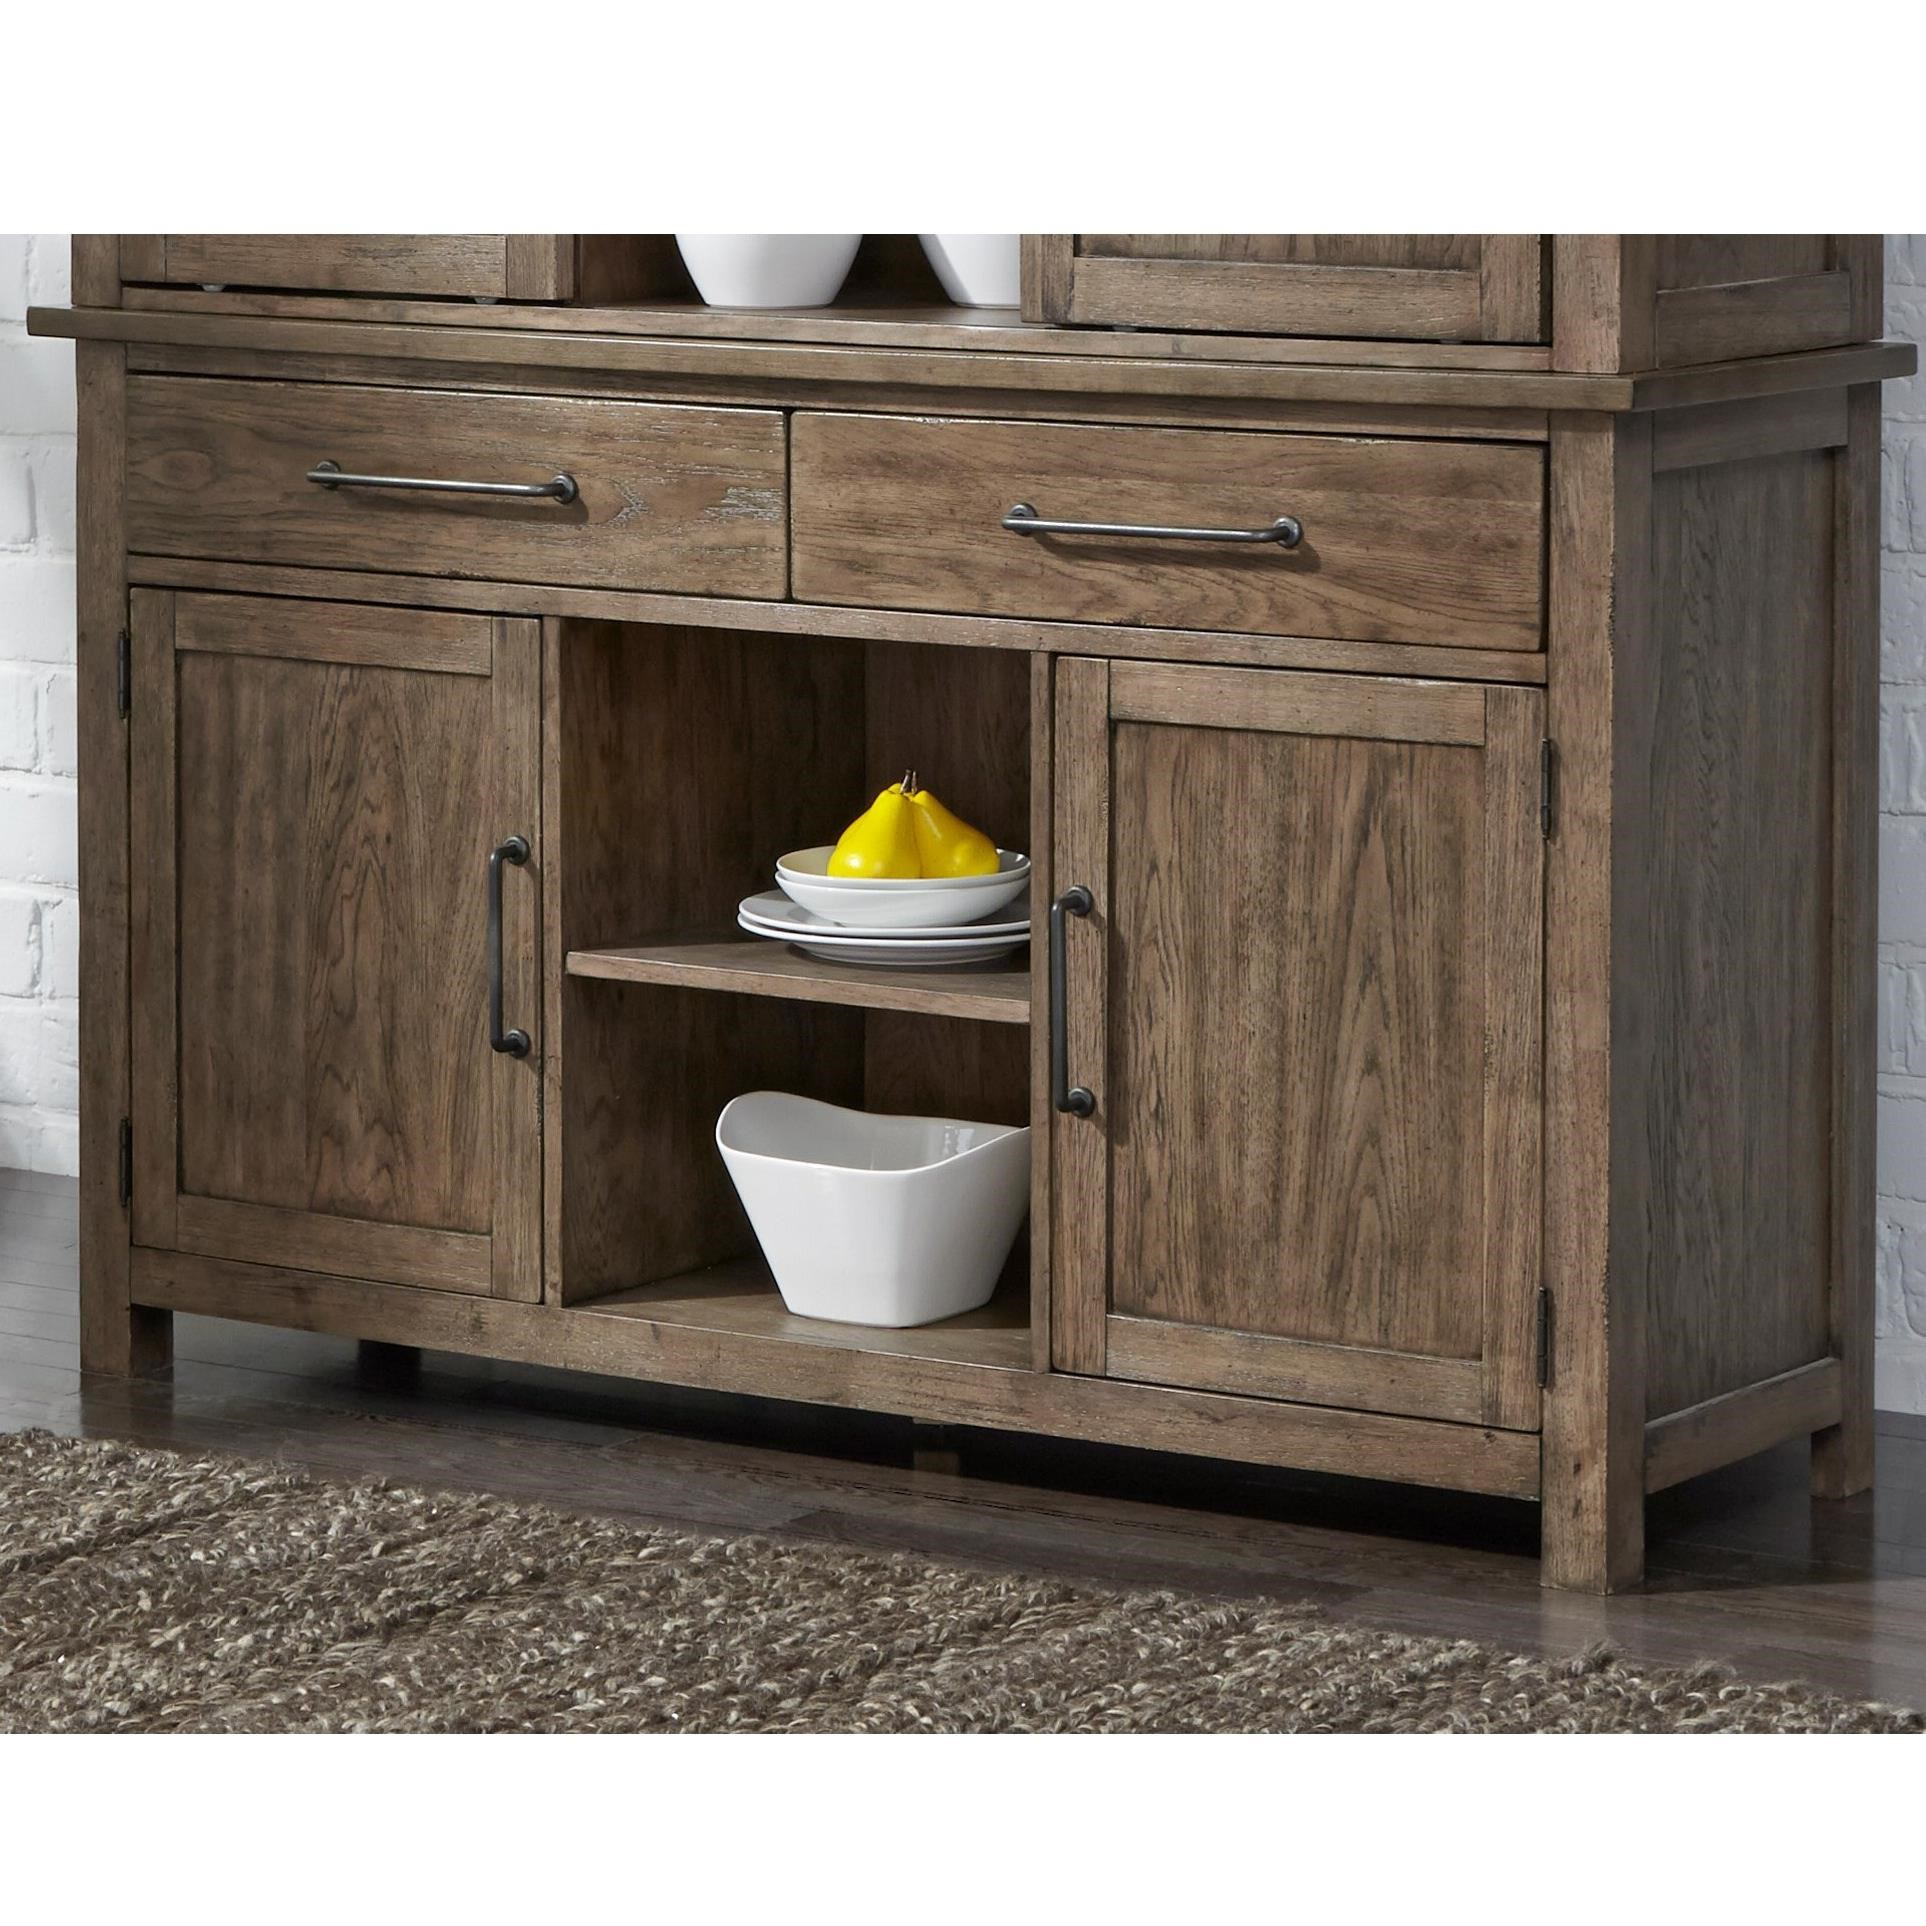 Sonoma Road Buffet by Liberty Furniture at Lapeer Furniture & Mattress Center